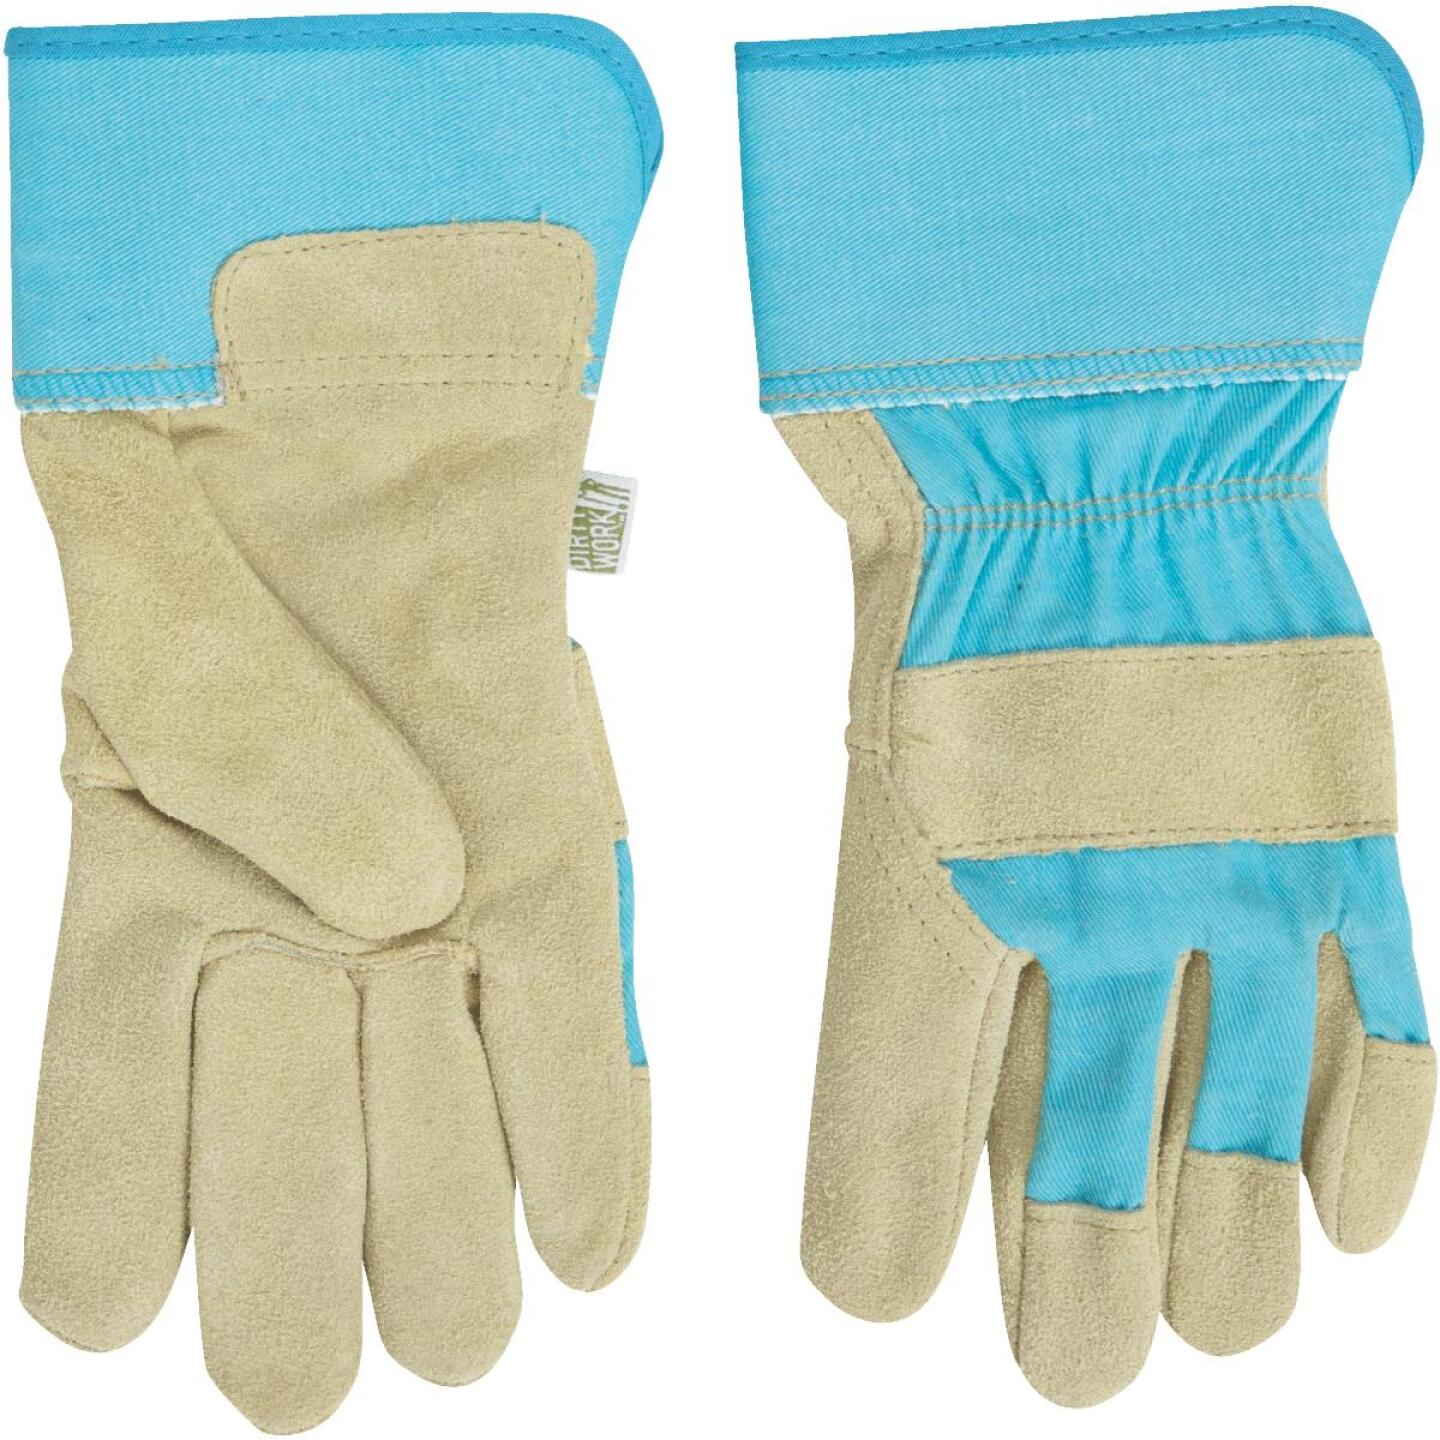 West Chester Protective Gear Dirty Work Women's Small Leather Work Glove Image 3